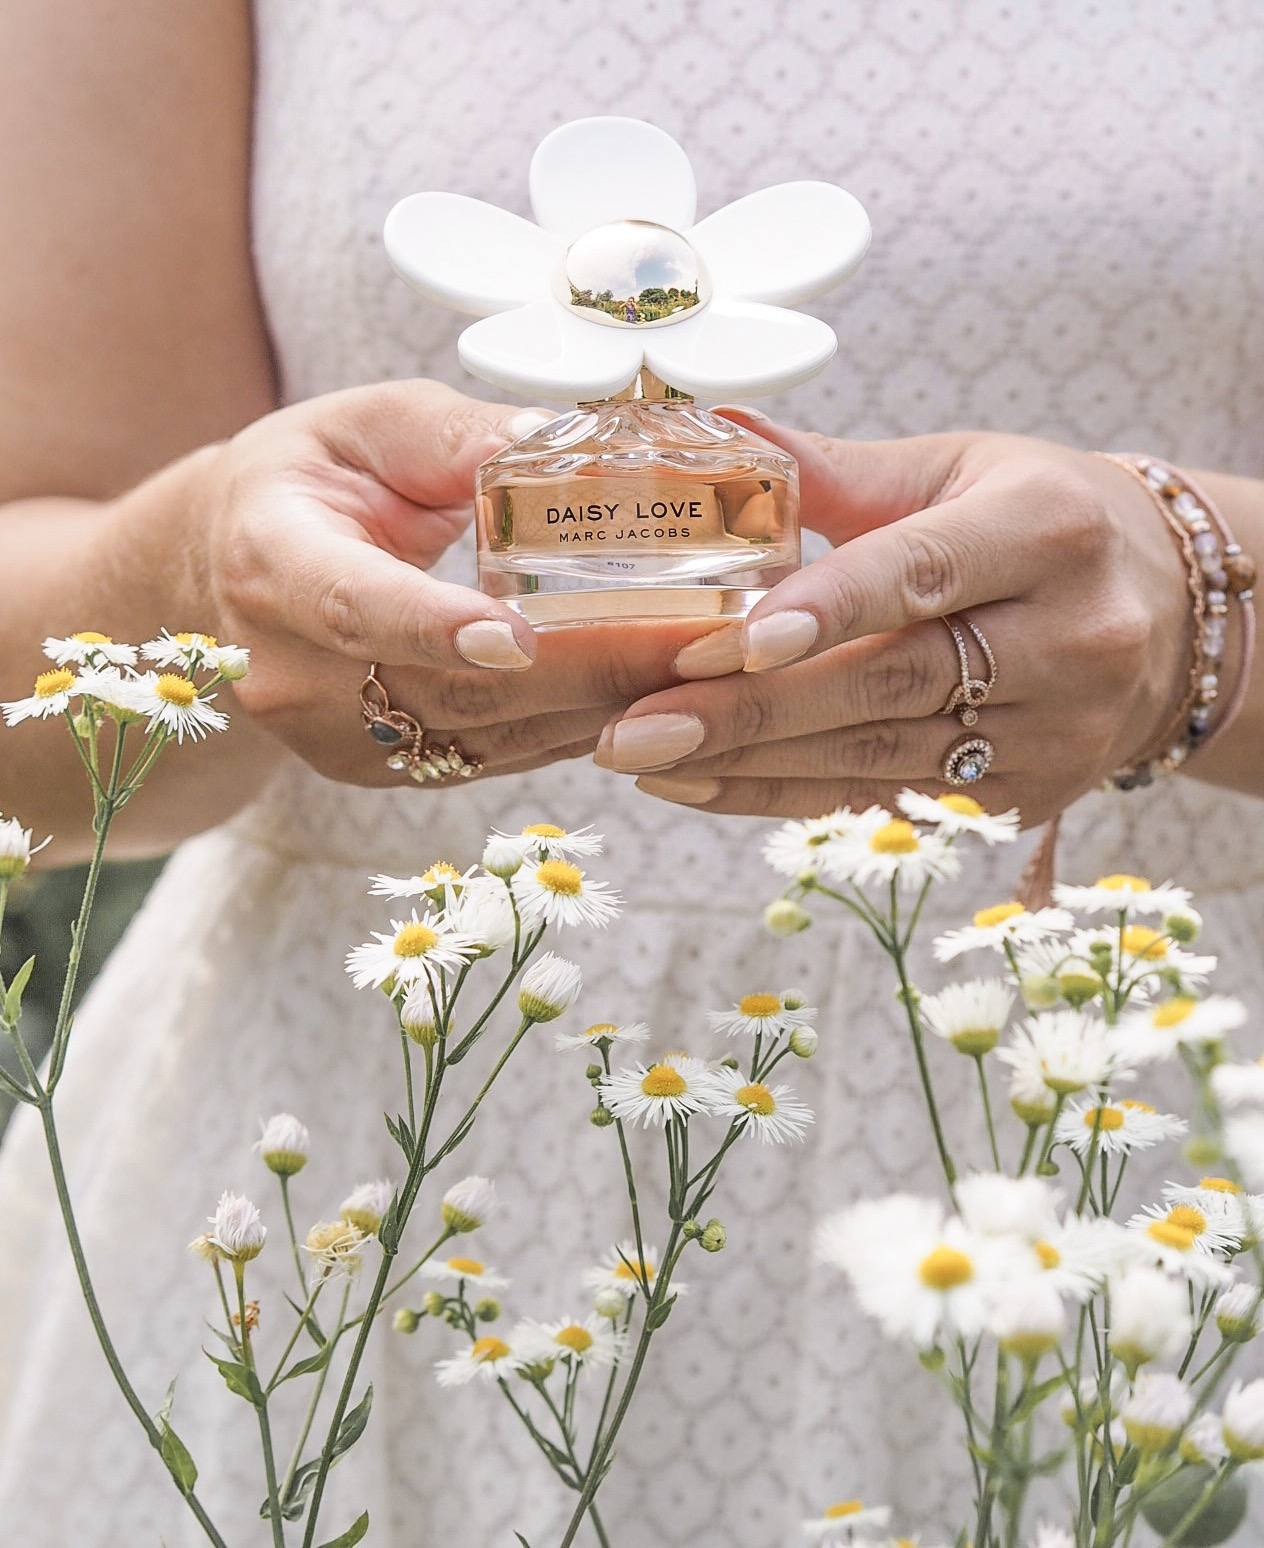 Loves Me, Loves Me Not ~ Marc Jacobs Daisy Love, Katie Kirk Loves, Beauty Blogger, UK Blogger, Fragrance Lover, Fragrance Direct, Perfume Lover, Marc Jacobs Fragrance, Daisy Love, Summer Fragrance